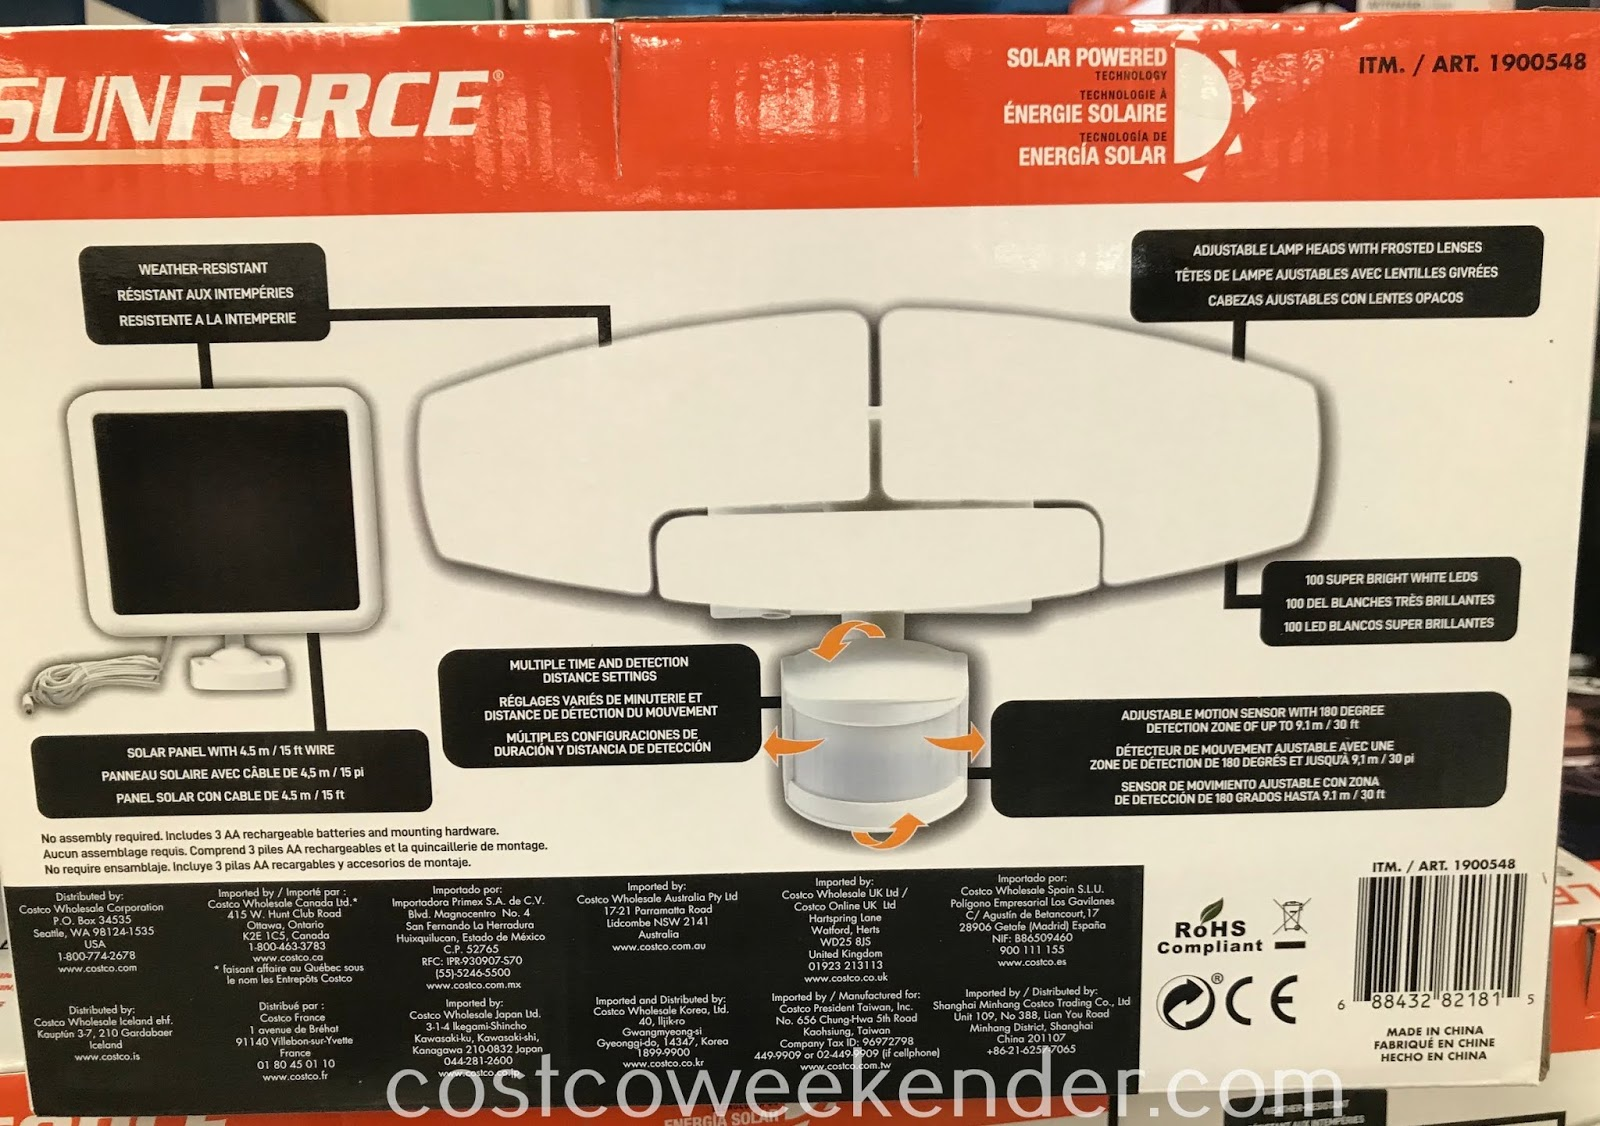 Costco 1900548 - Sunforce Solar Motion Activated Light saves on the cost of energy by being powered by the sun